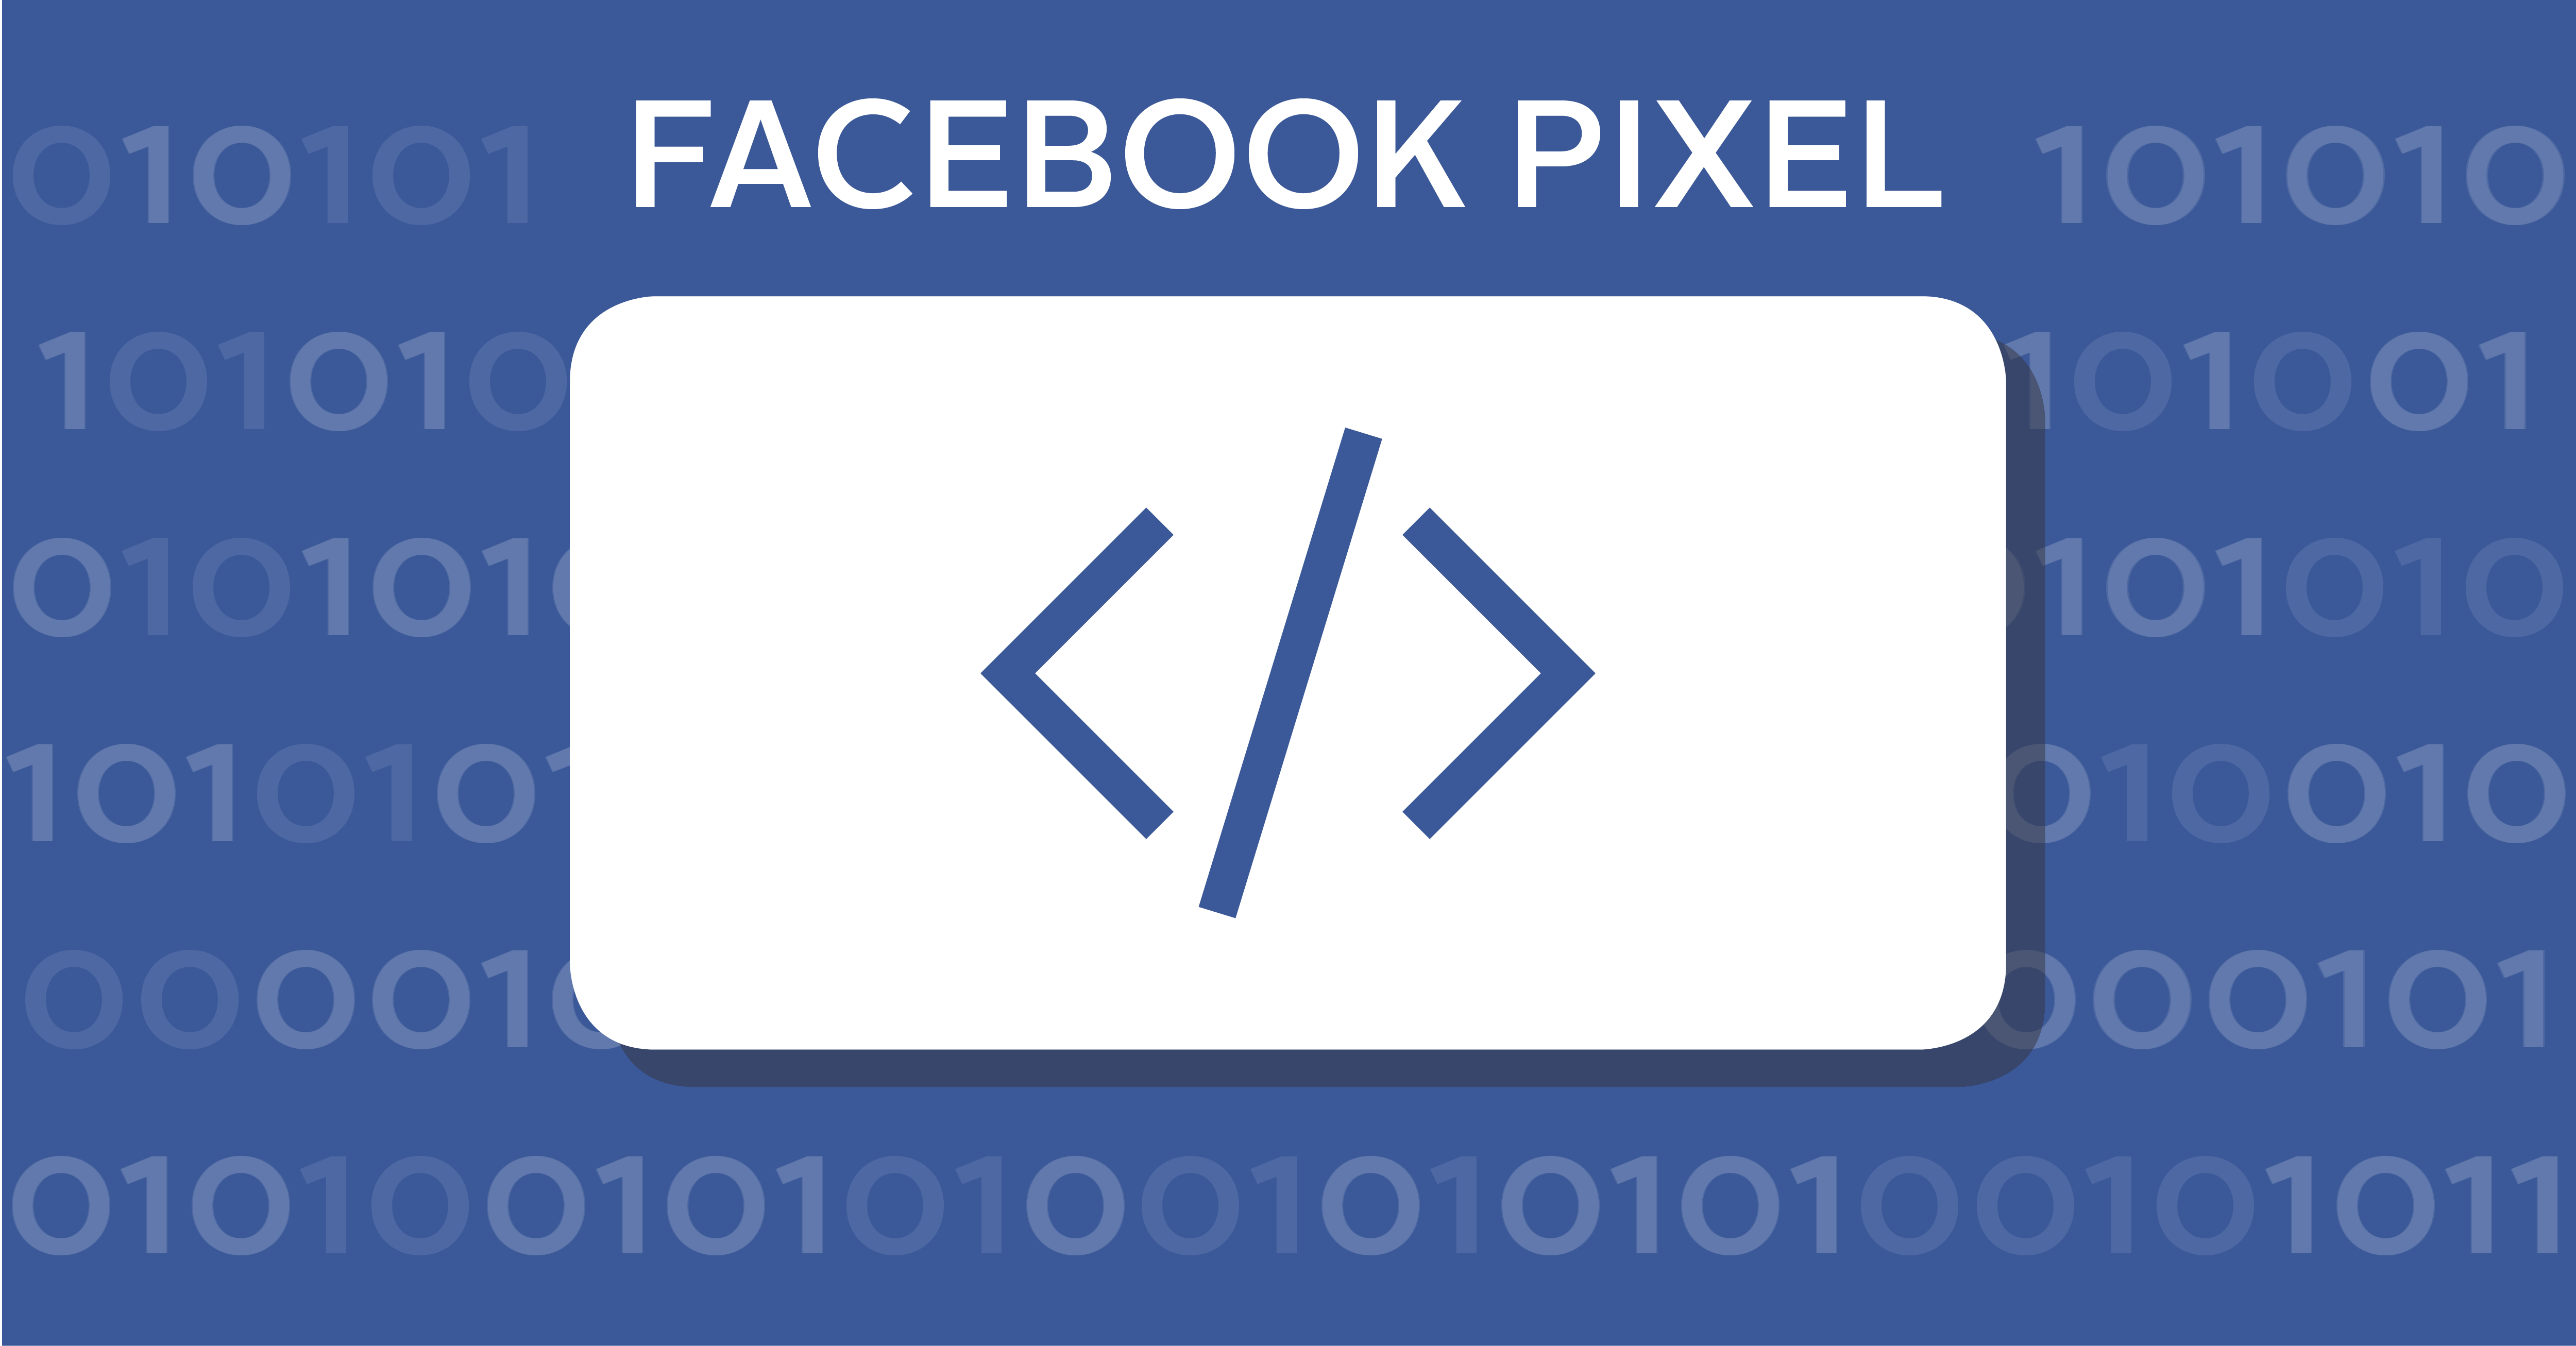 The Facebook Pixel: What It Is and How to Use It